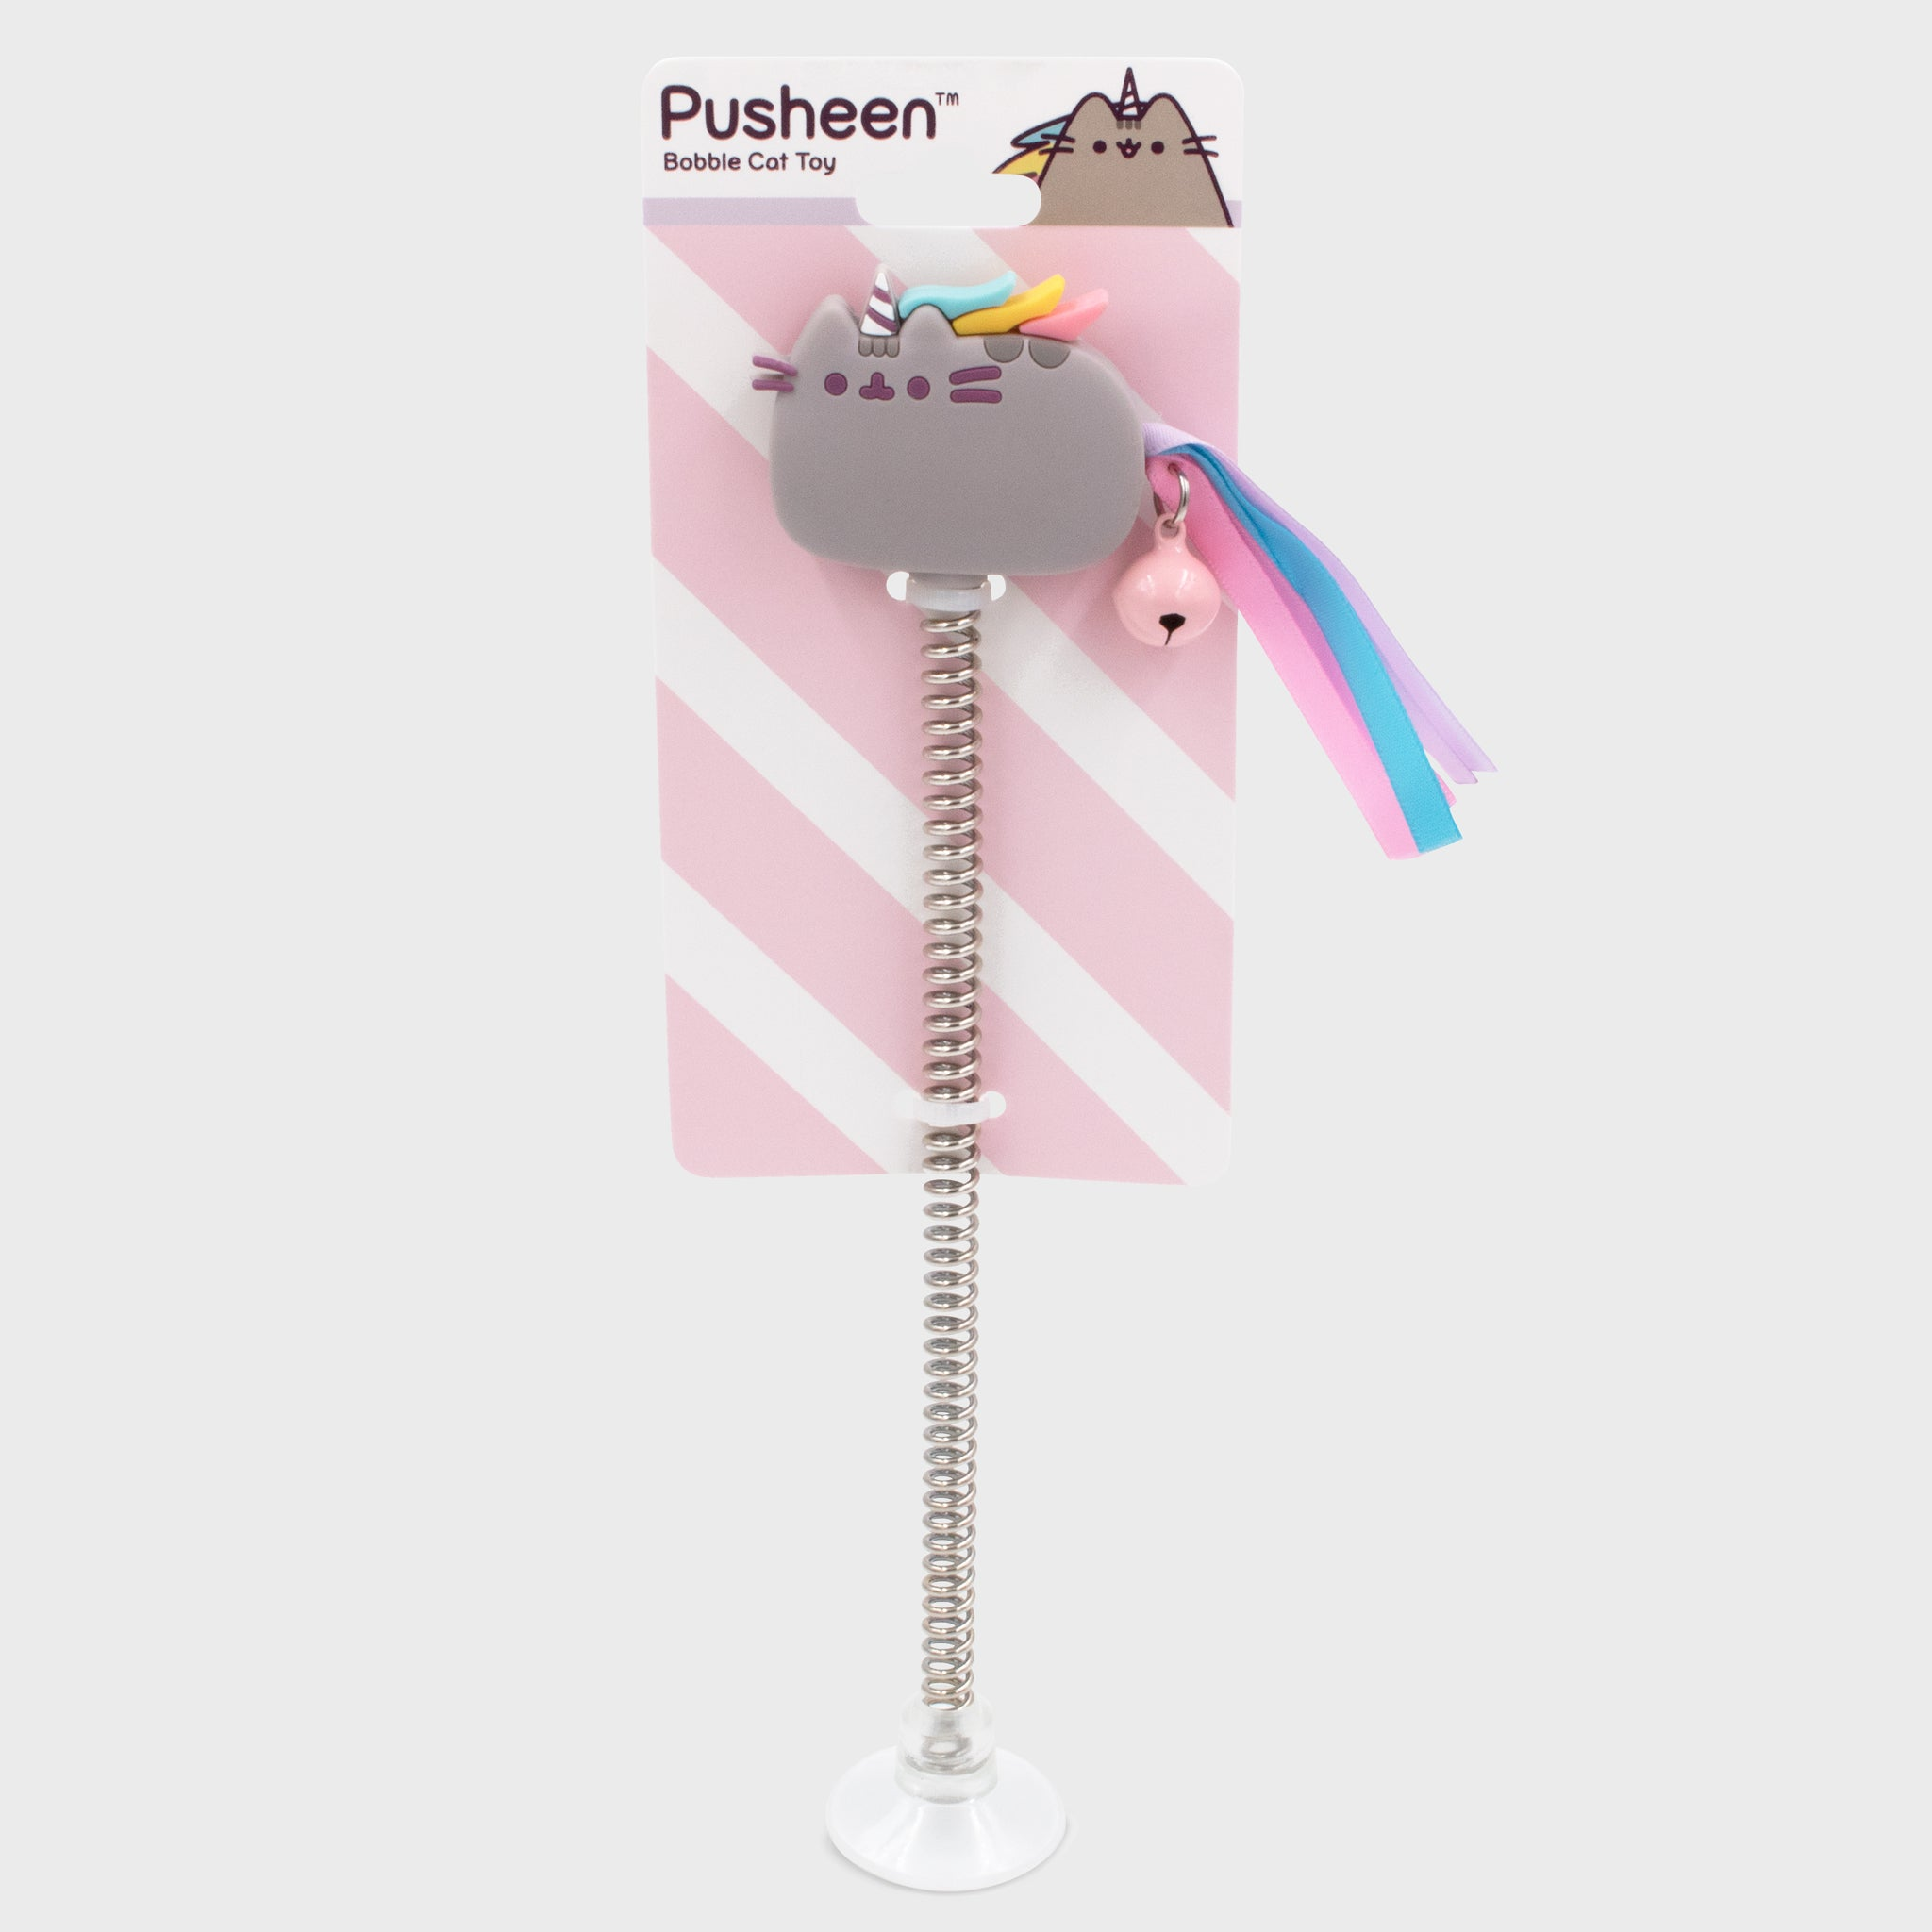 pusheen pet cat toy bobble cute adorable pusheenicorn unicorn culturefly